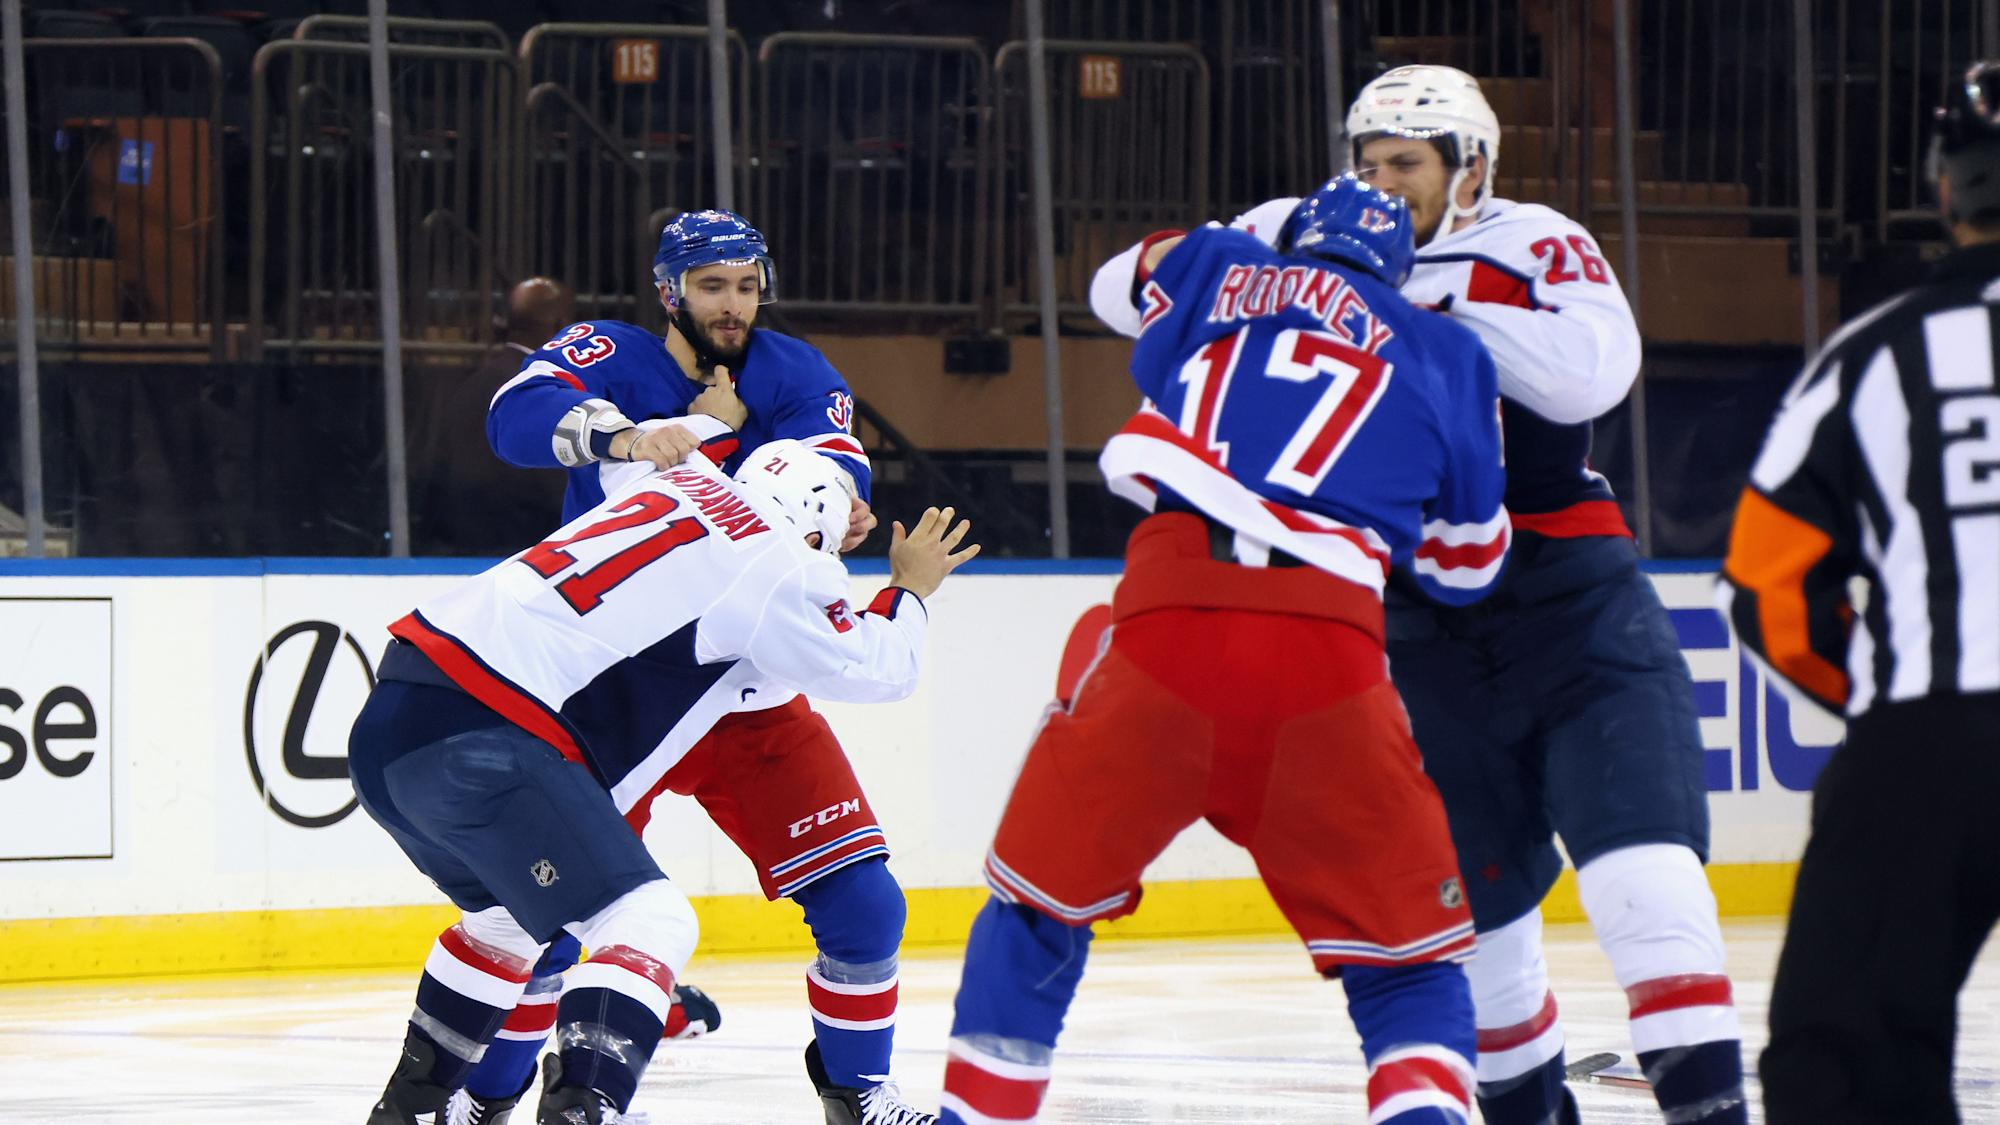 Rangers-Capitals erupts with full-on line brawl after Tom Wilson controversy